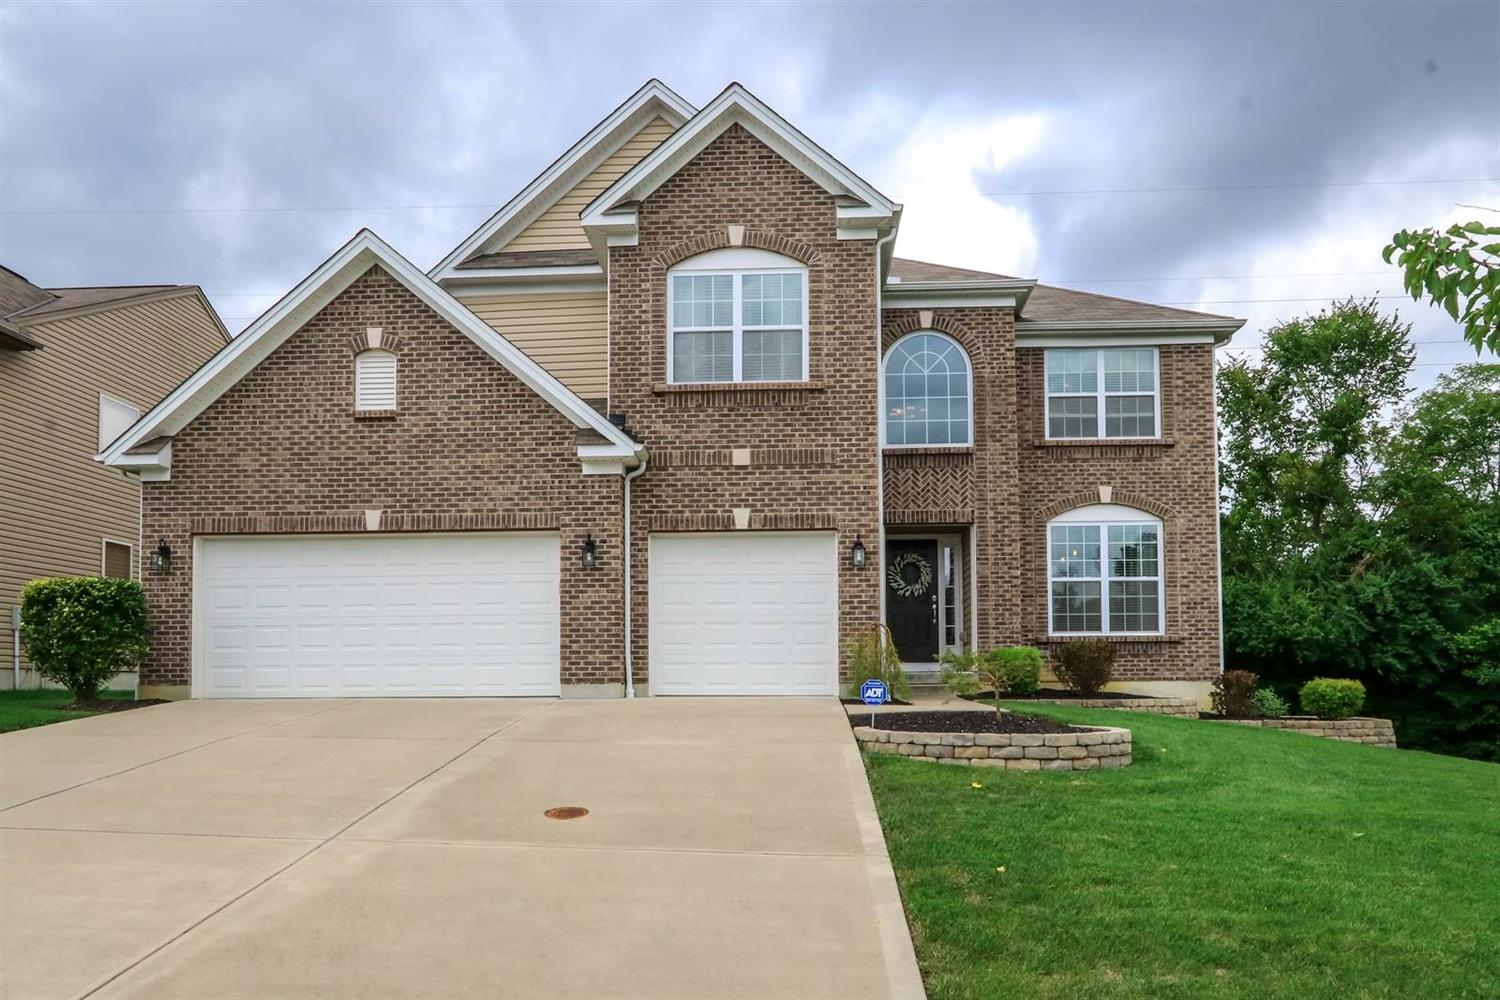 Property for sale at 4153 Roland Creek Drive, Union Twp,  Ohio 45245